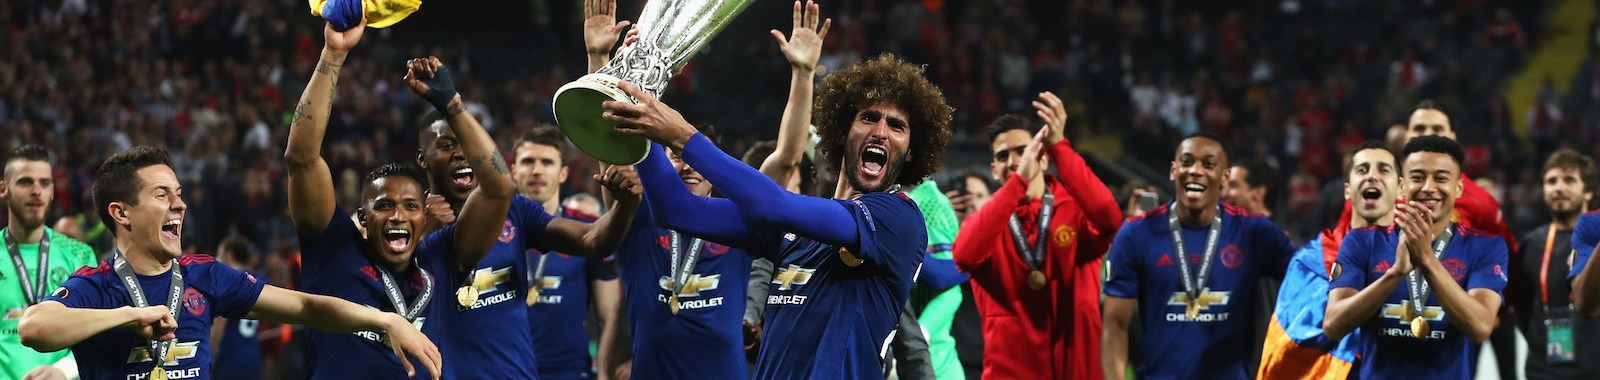 STOCKHOLM, SWEDEN - MAY 24:  Marouane Fellaini of Manchester United celebrates with The Europa League trophy after the UEFA Europa League Final between Ajax and Manchester United at Friends Arena on May 24, 2017 in Stockholm, Sweden.  (Photo by Julian Finney/Getty Images)